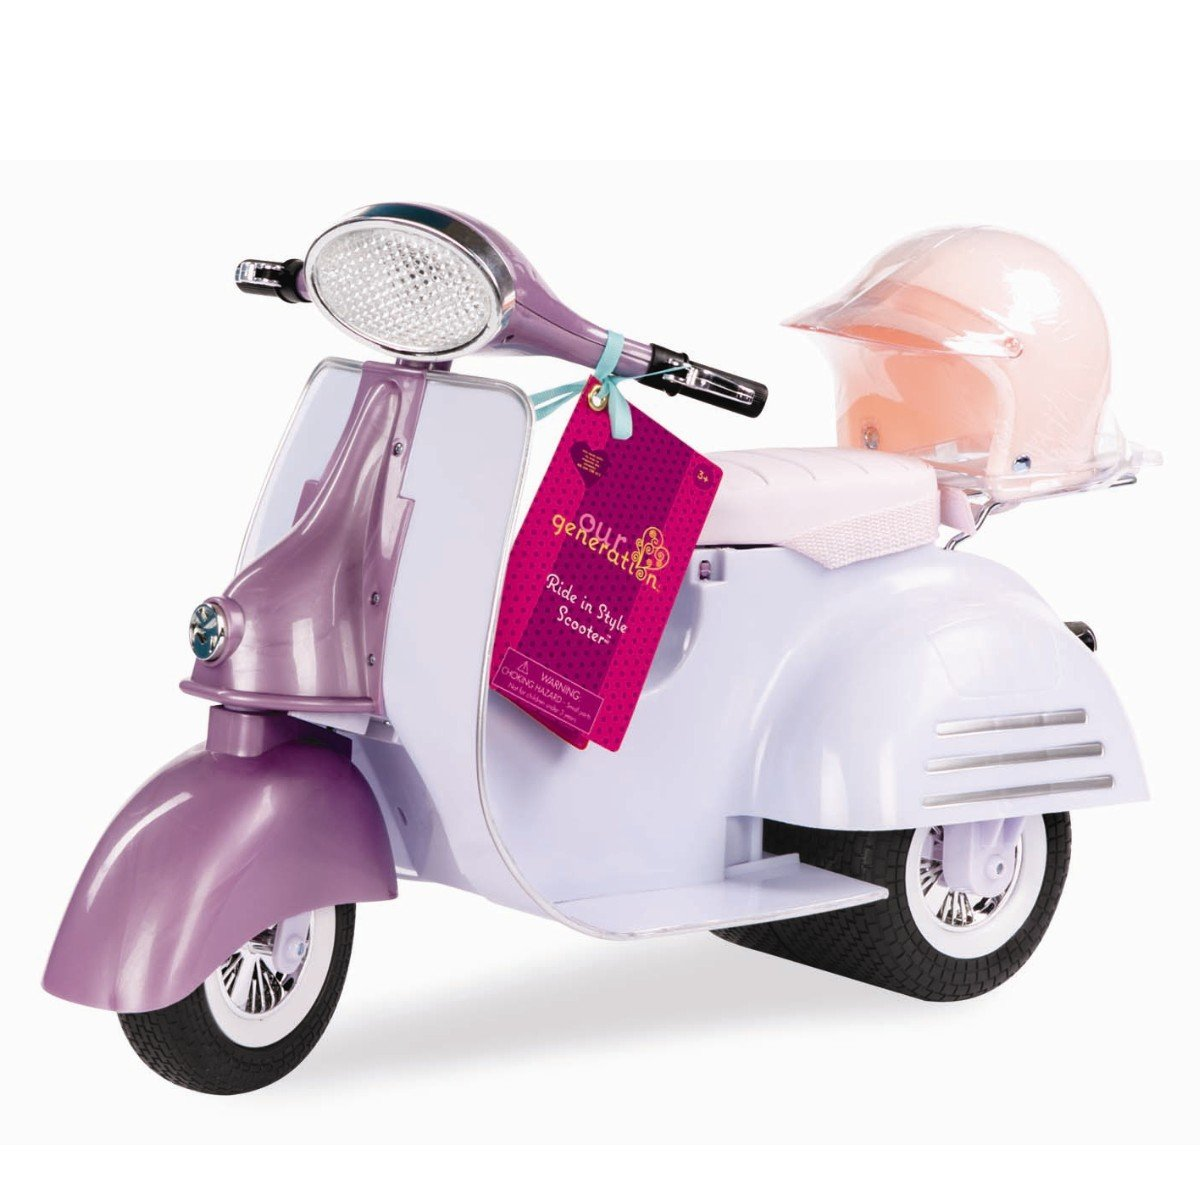 Our Generation - Ride in Style Scooter, Purple and Blue (737360)